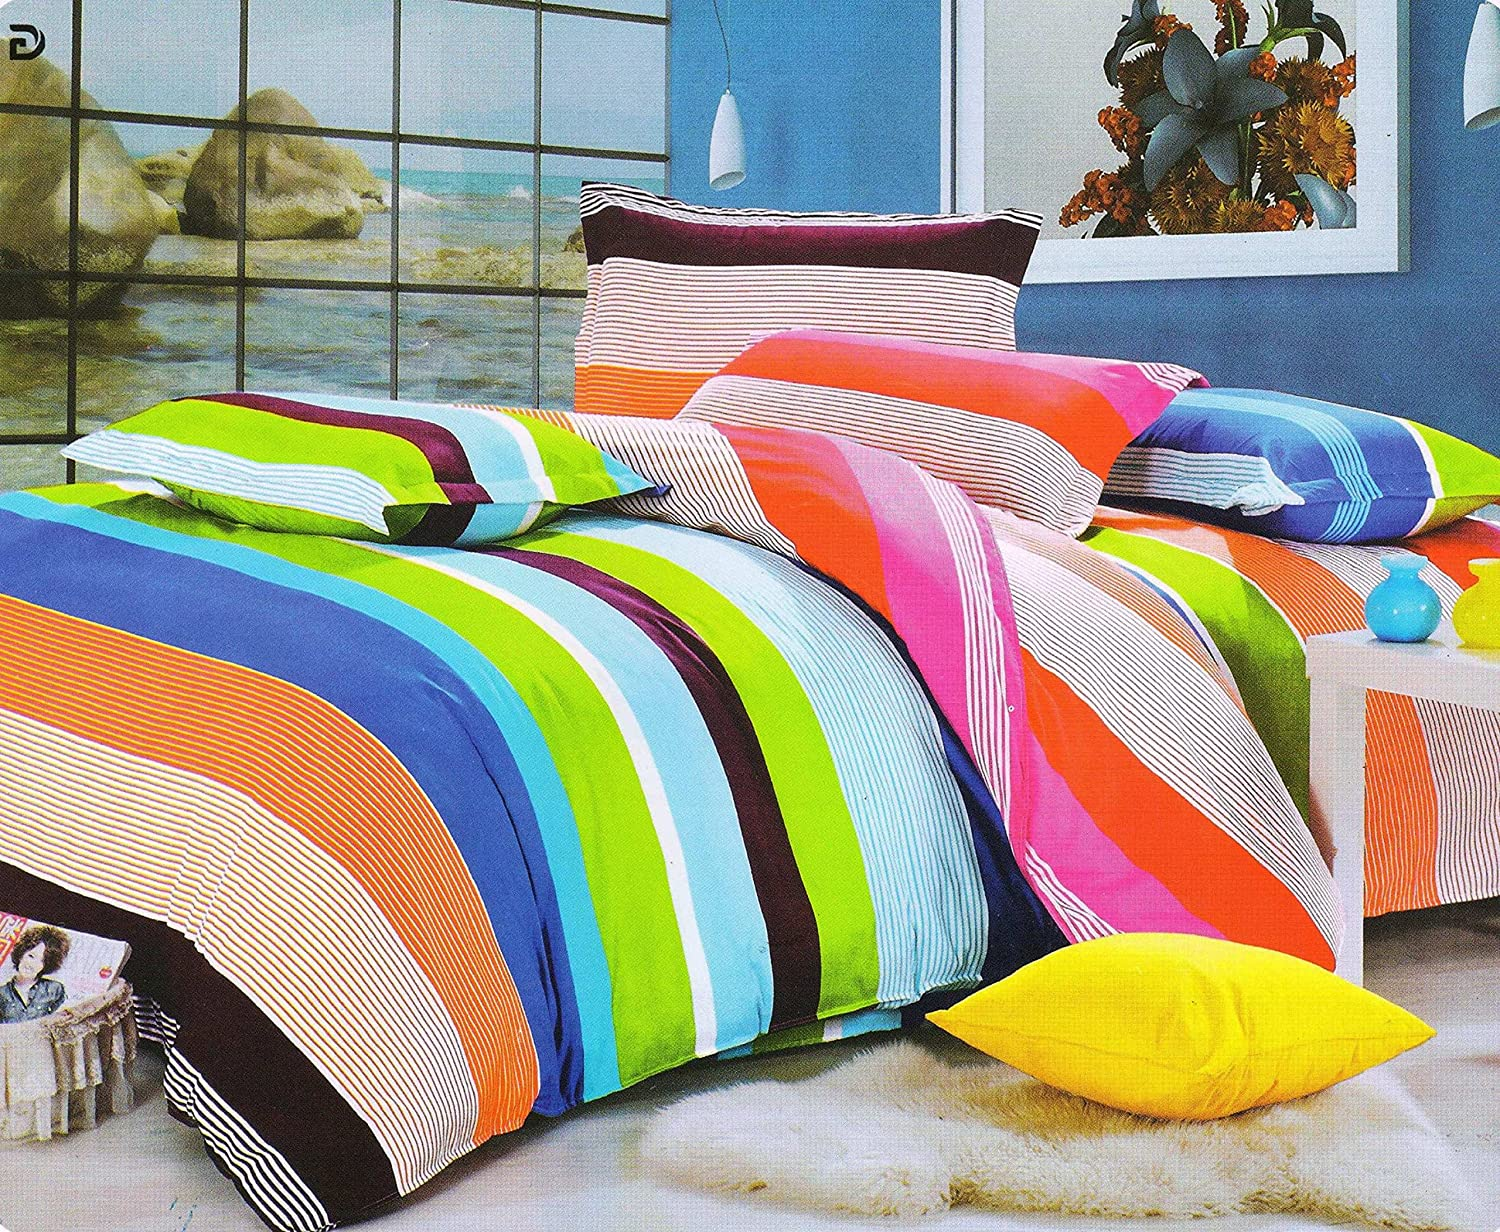 efa90525706 Buy HFI140 TC 3D Printed Polycotton Double Bed Sheet with 2 Pillow Cover  (88X96 inches) - Multicolor Online at Low Prices in India - Amazon.in